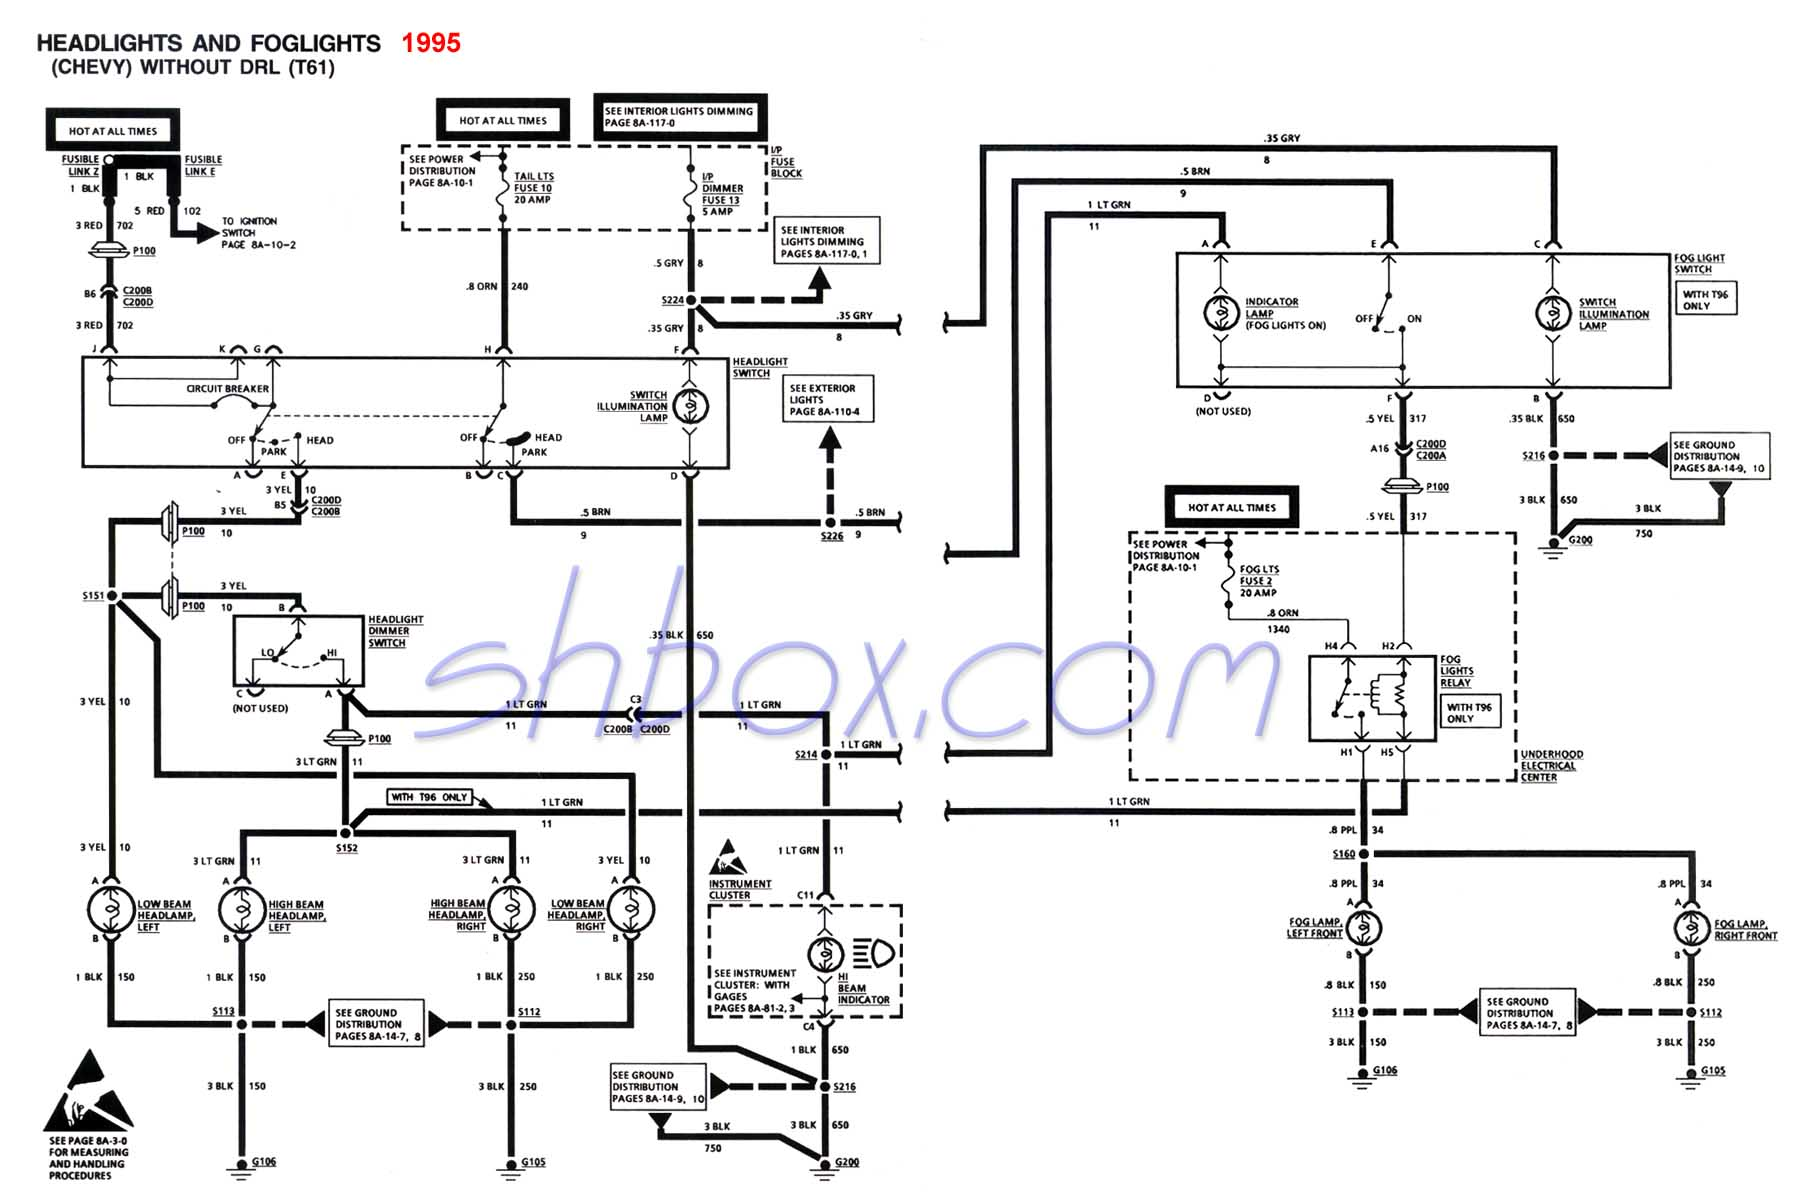 4th gen lt1 f body tech aids on 1973 Pontiac Firebird Wiring Diagram for headlight foglight schematic (1995 camaro) at 1967 Pontiac Catalina Wiring-Diagram